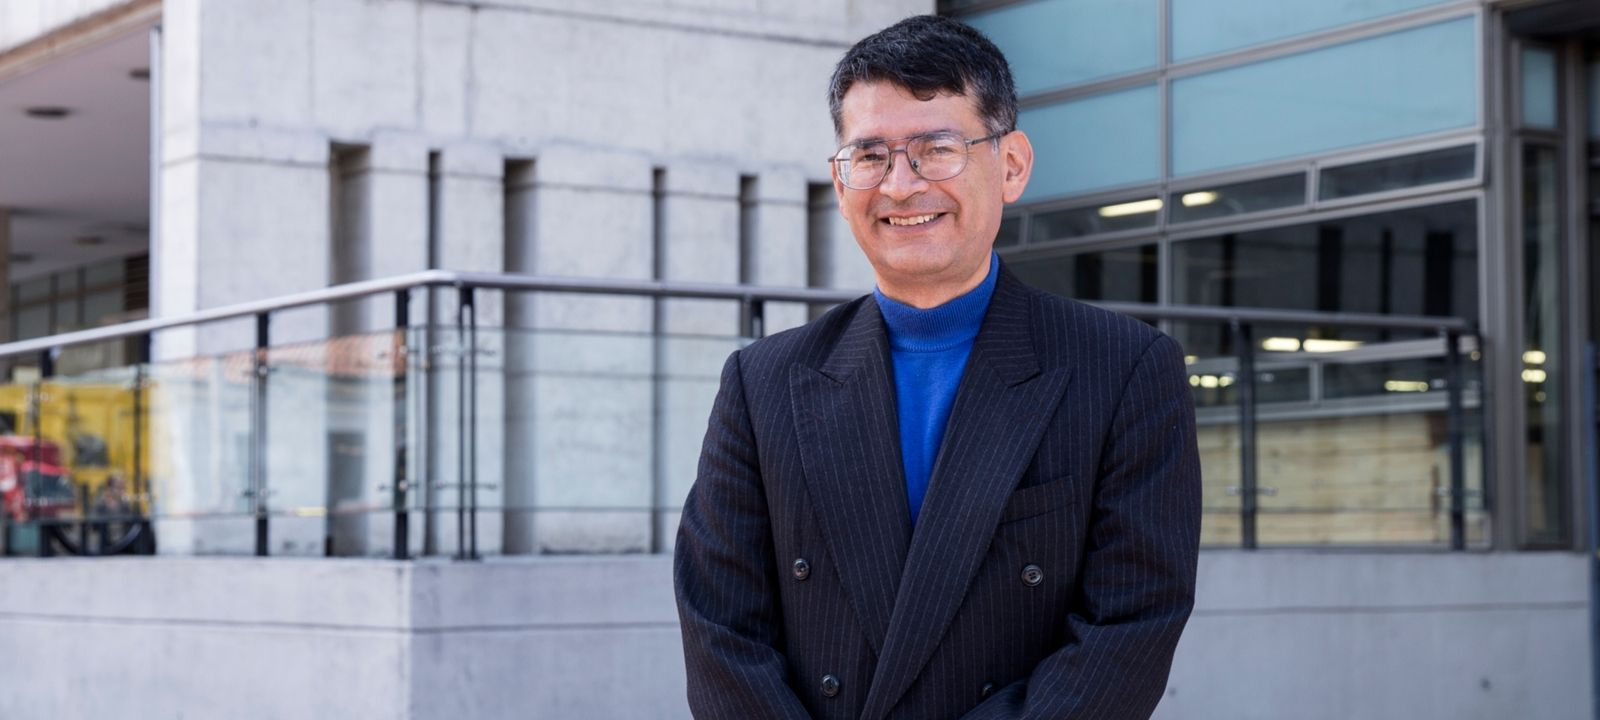 Alfonso Reyes, Editor en Jefe del International Journal of Systems and Society (IJSS)   Uniandes